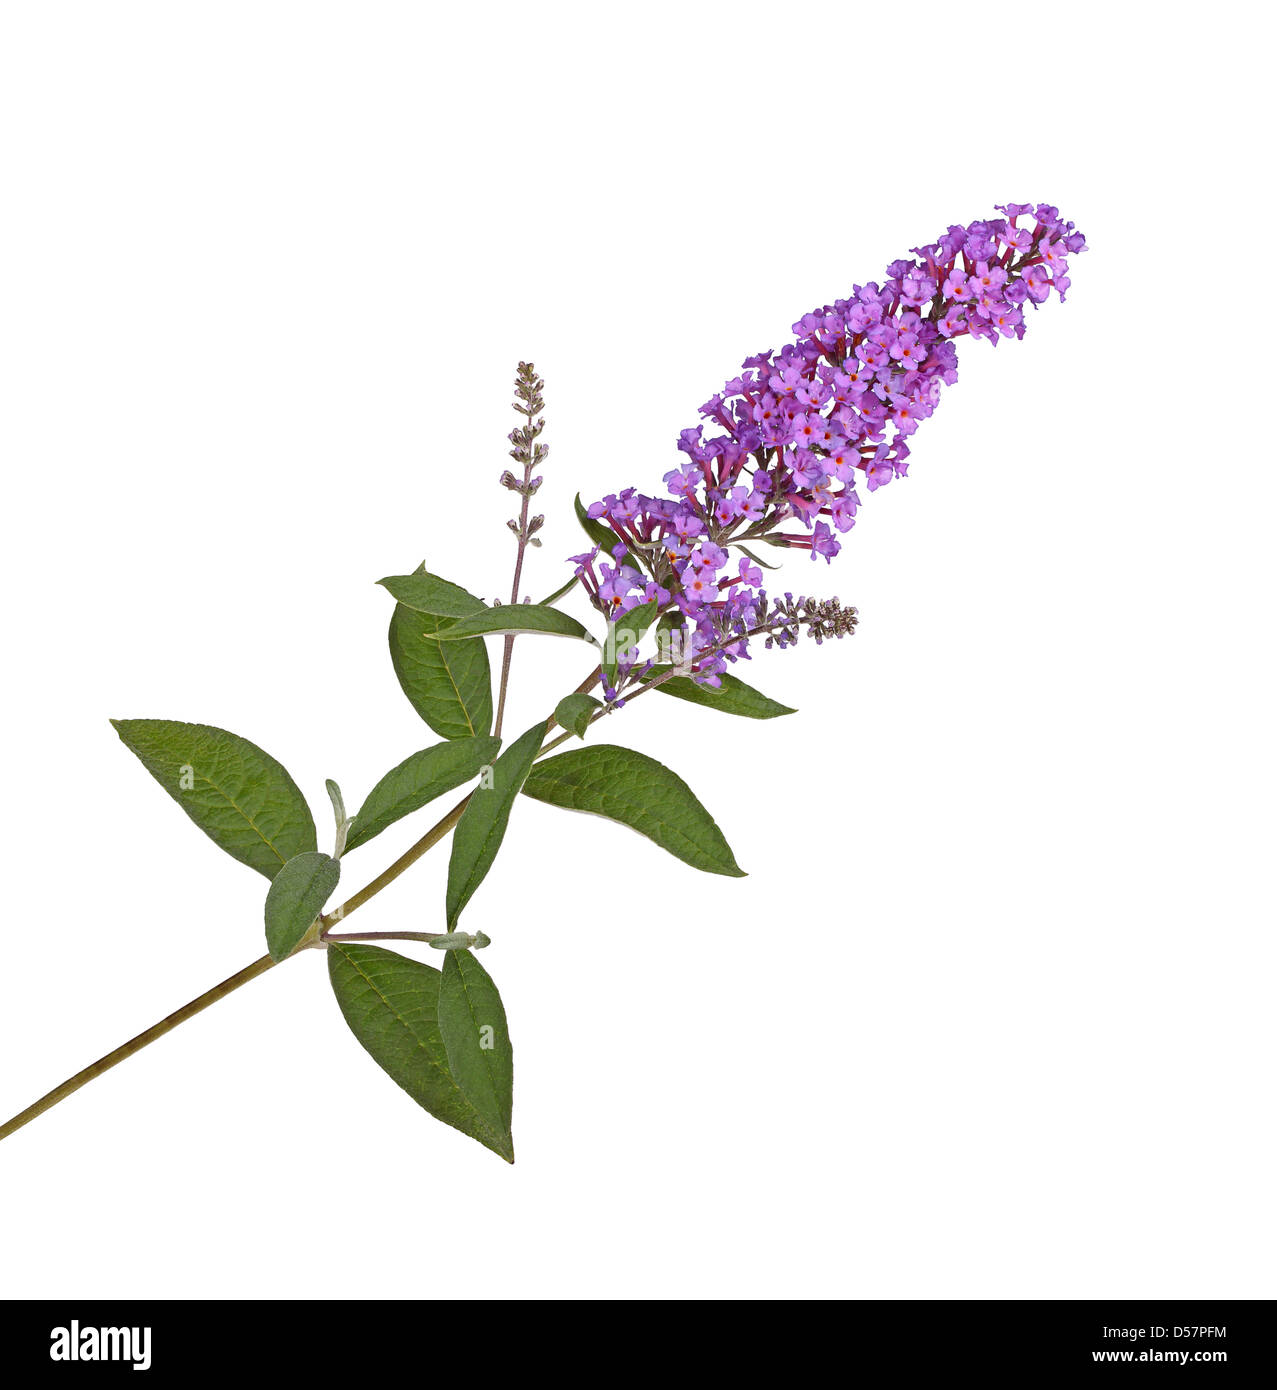 Branch with purple flowers of a butterfly bush (Buddleja davidii) isolated against a white background - Stock Image